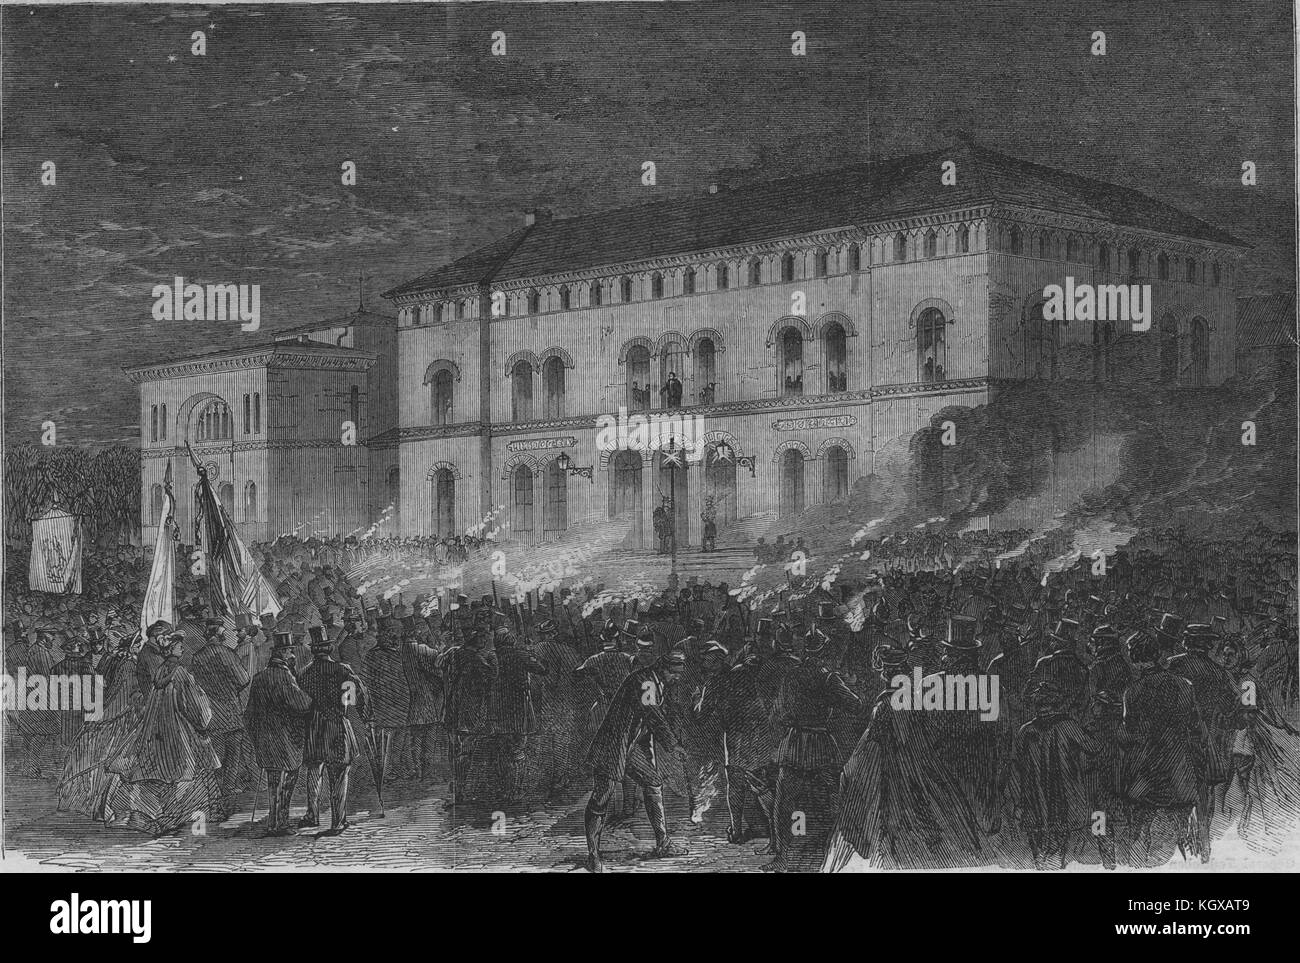 Torchlight welcome to Prince Frederick in Kiel at the Railway Hotel 1864. The Illustrated London News - Stock Image